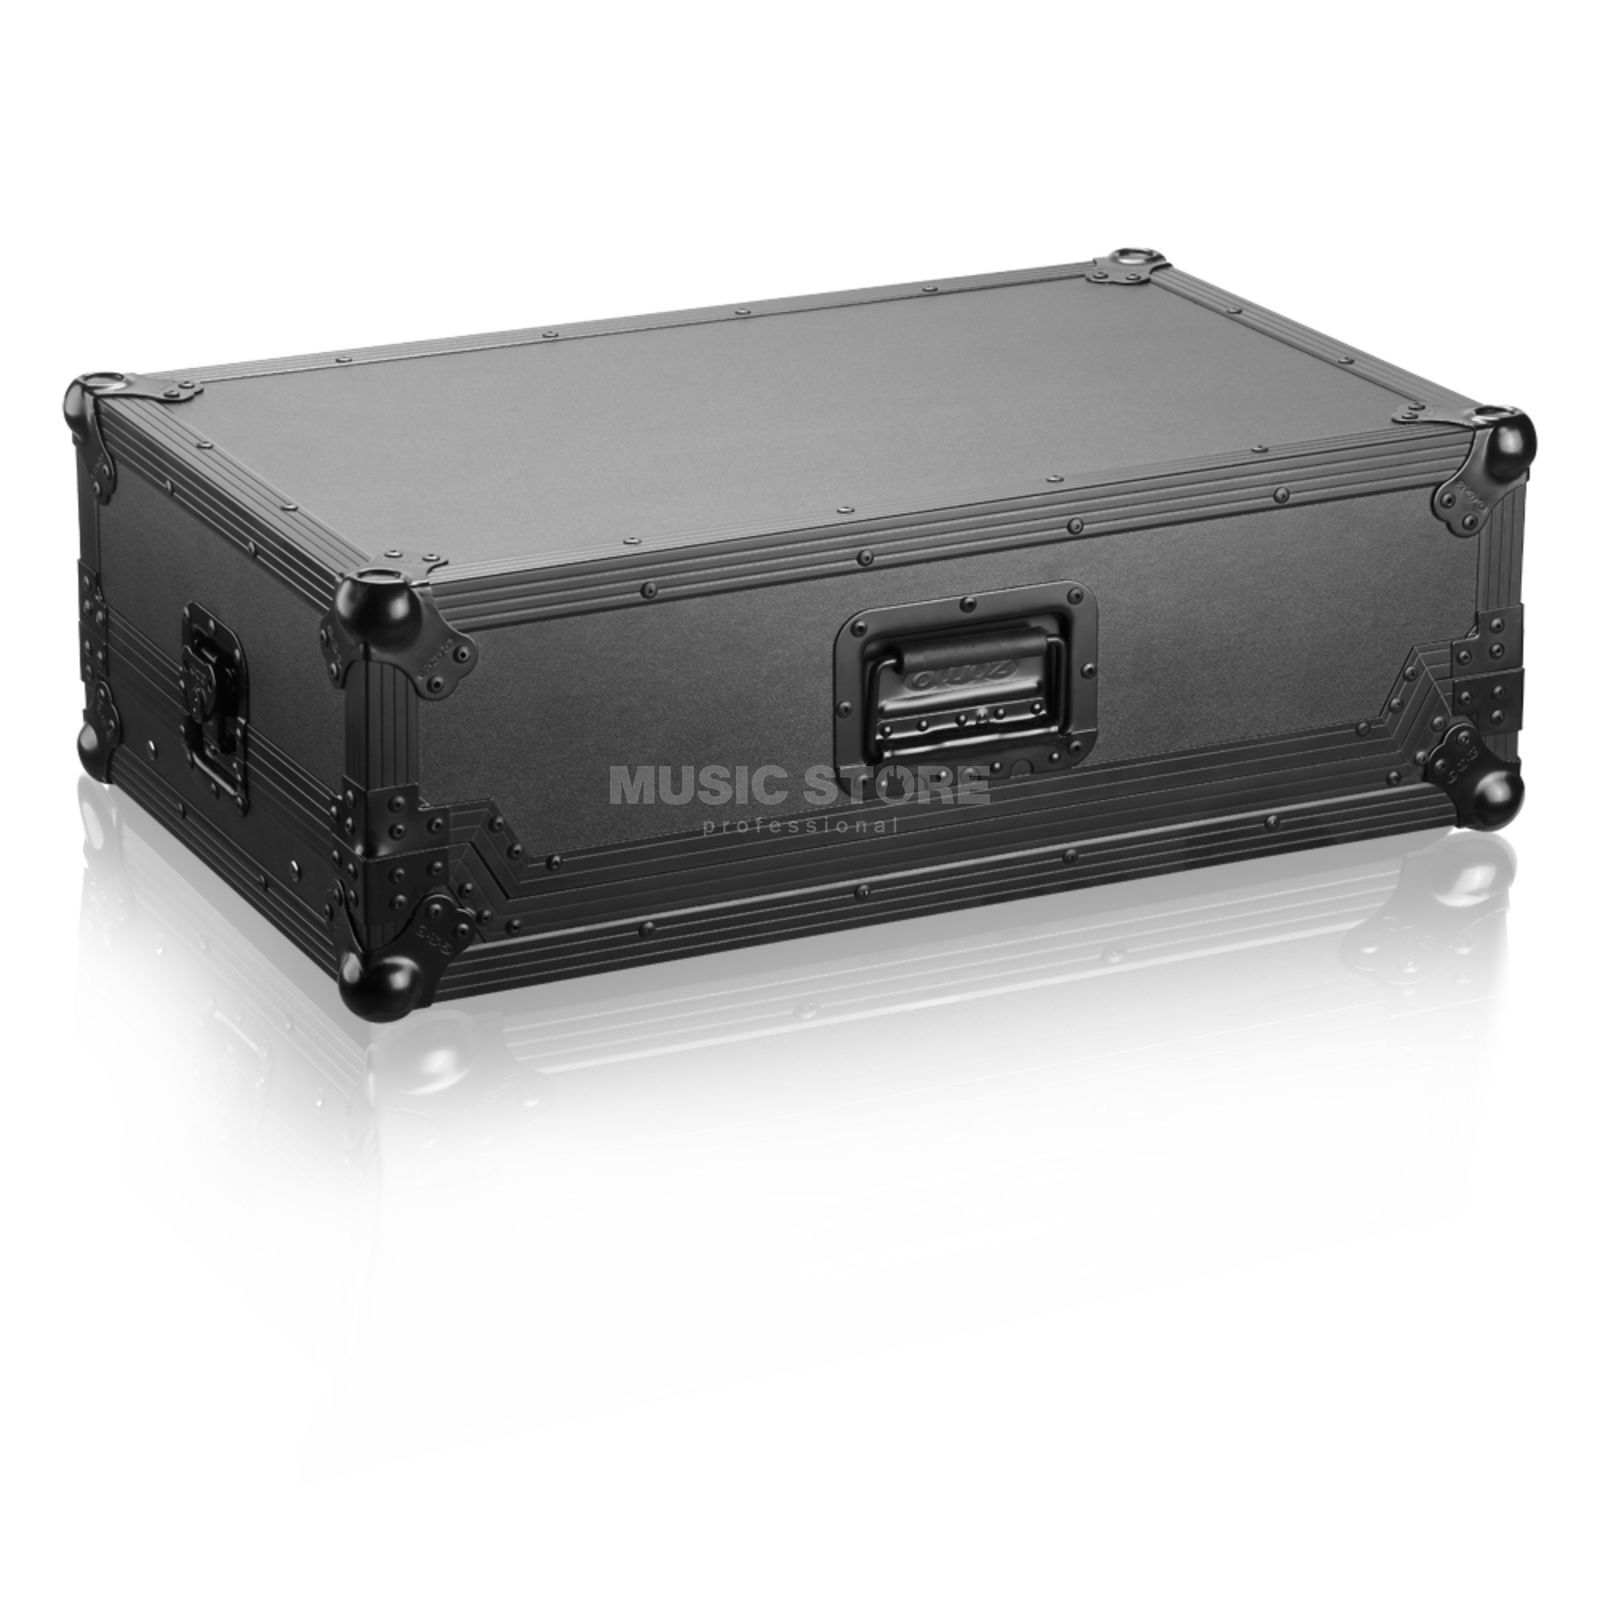 Zomo P-XDJ-R1 PLUS NSE Case for XDJ-R1 + Laptop Zdjęcie produktu